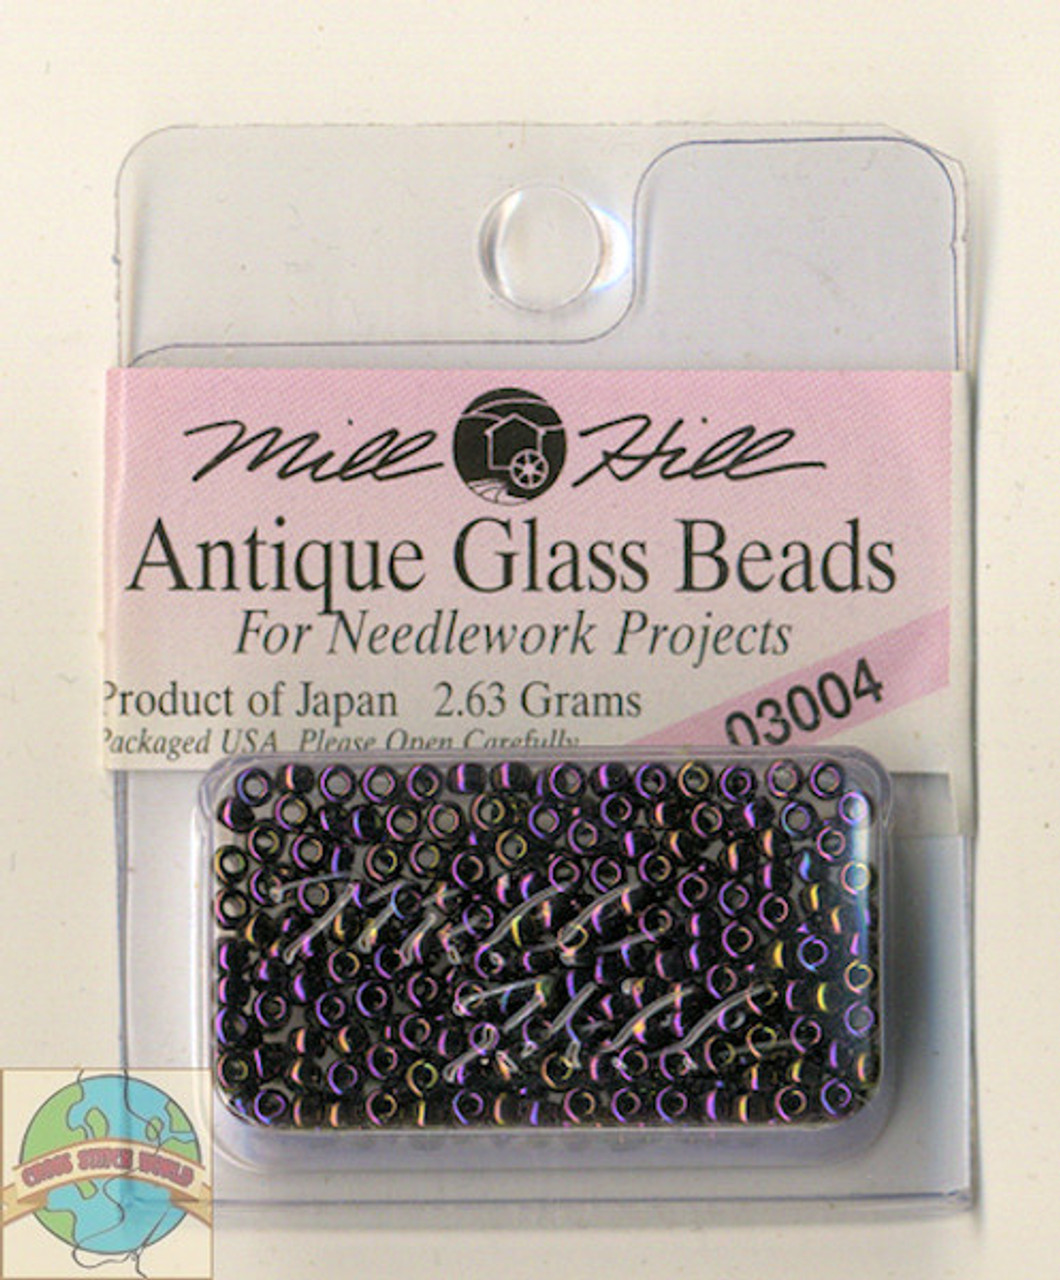 Mill Hill Antique Glass Beads 2.63g Eggplant